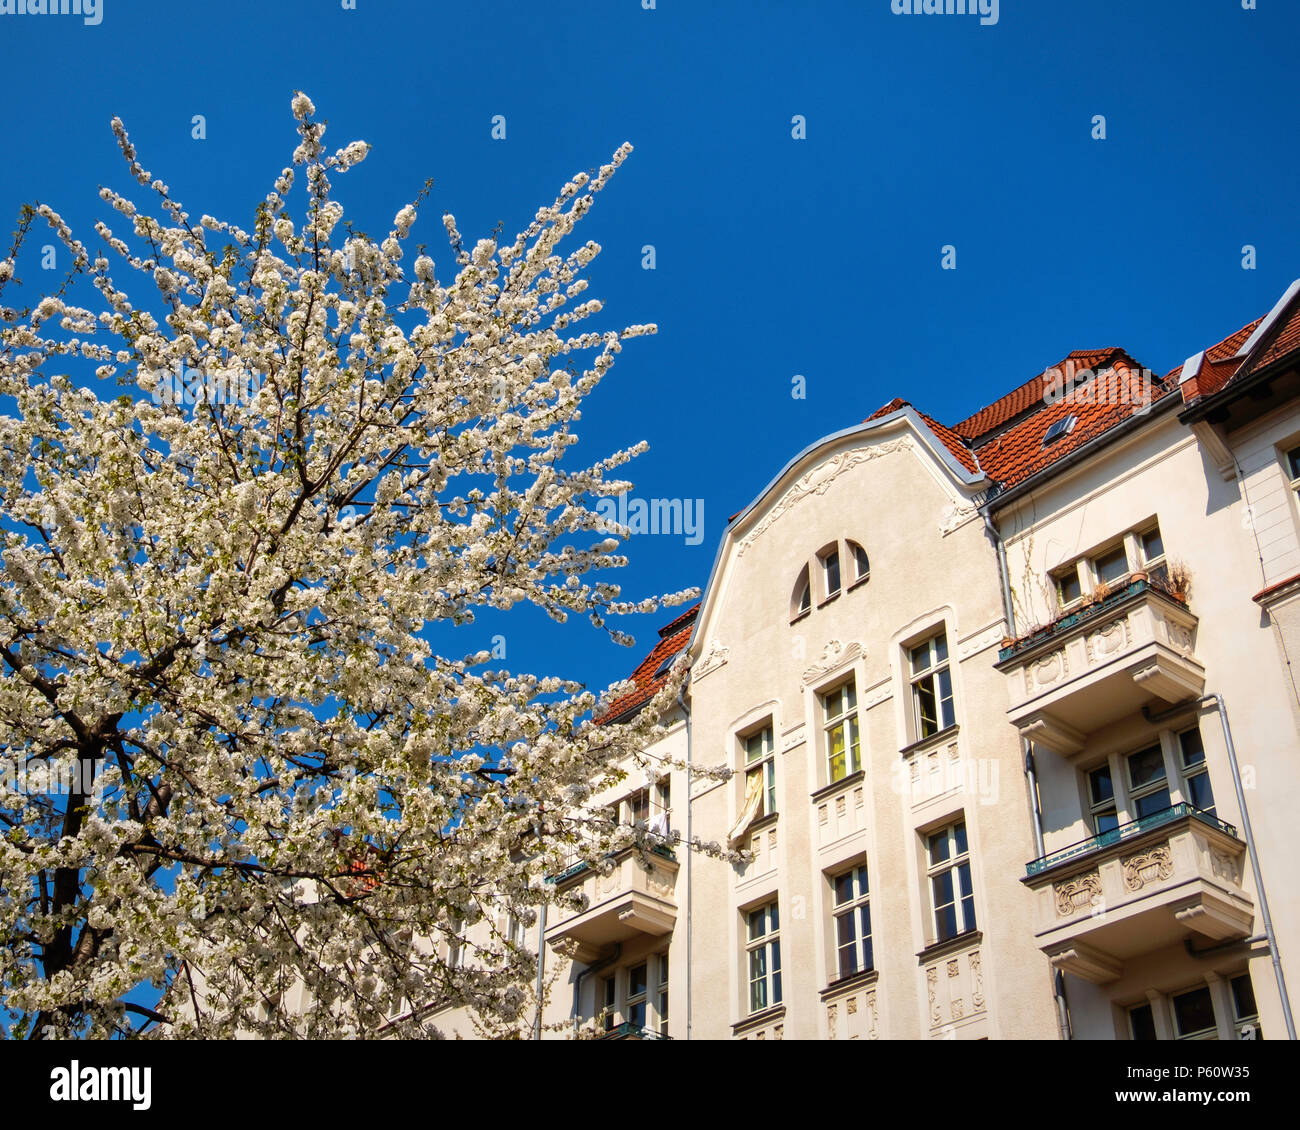 Berlin Prenzlauer Berg, Gneiststraße street view in spring with old gabled apartment buildings and blossoms on trees Stock Photo